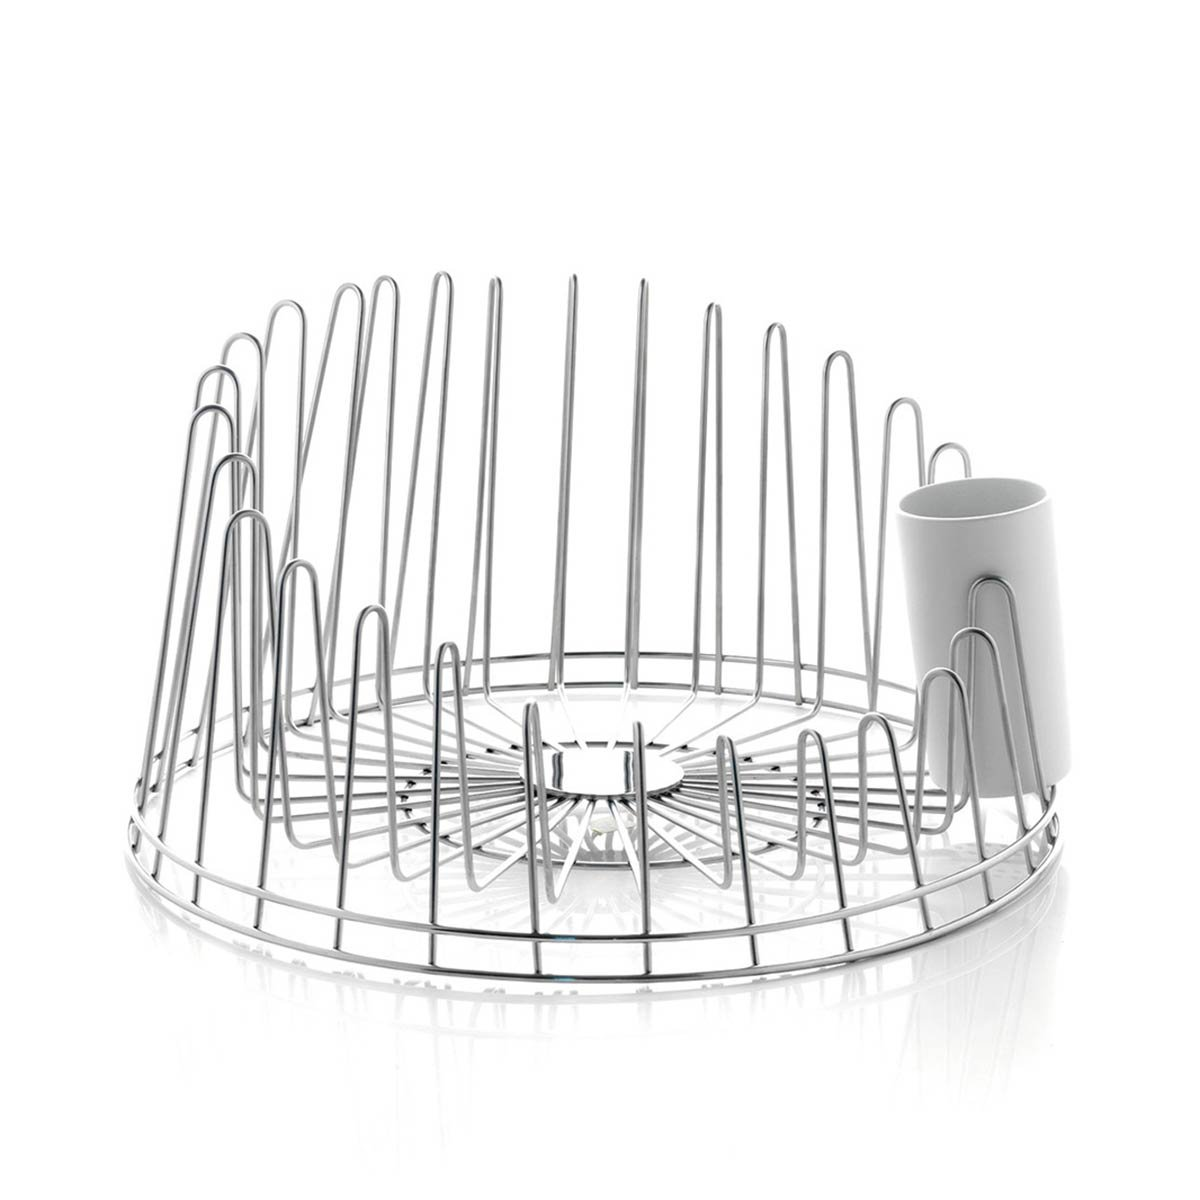 Alessi Tempo Stainless Steel Dish Drainer